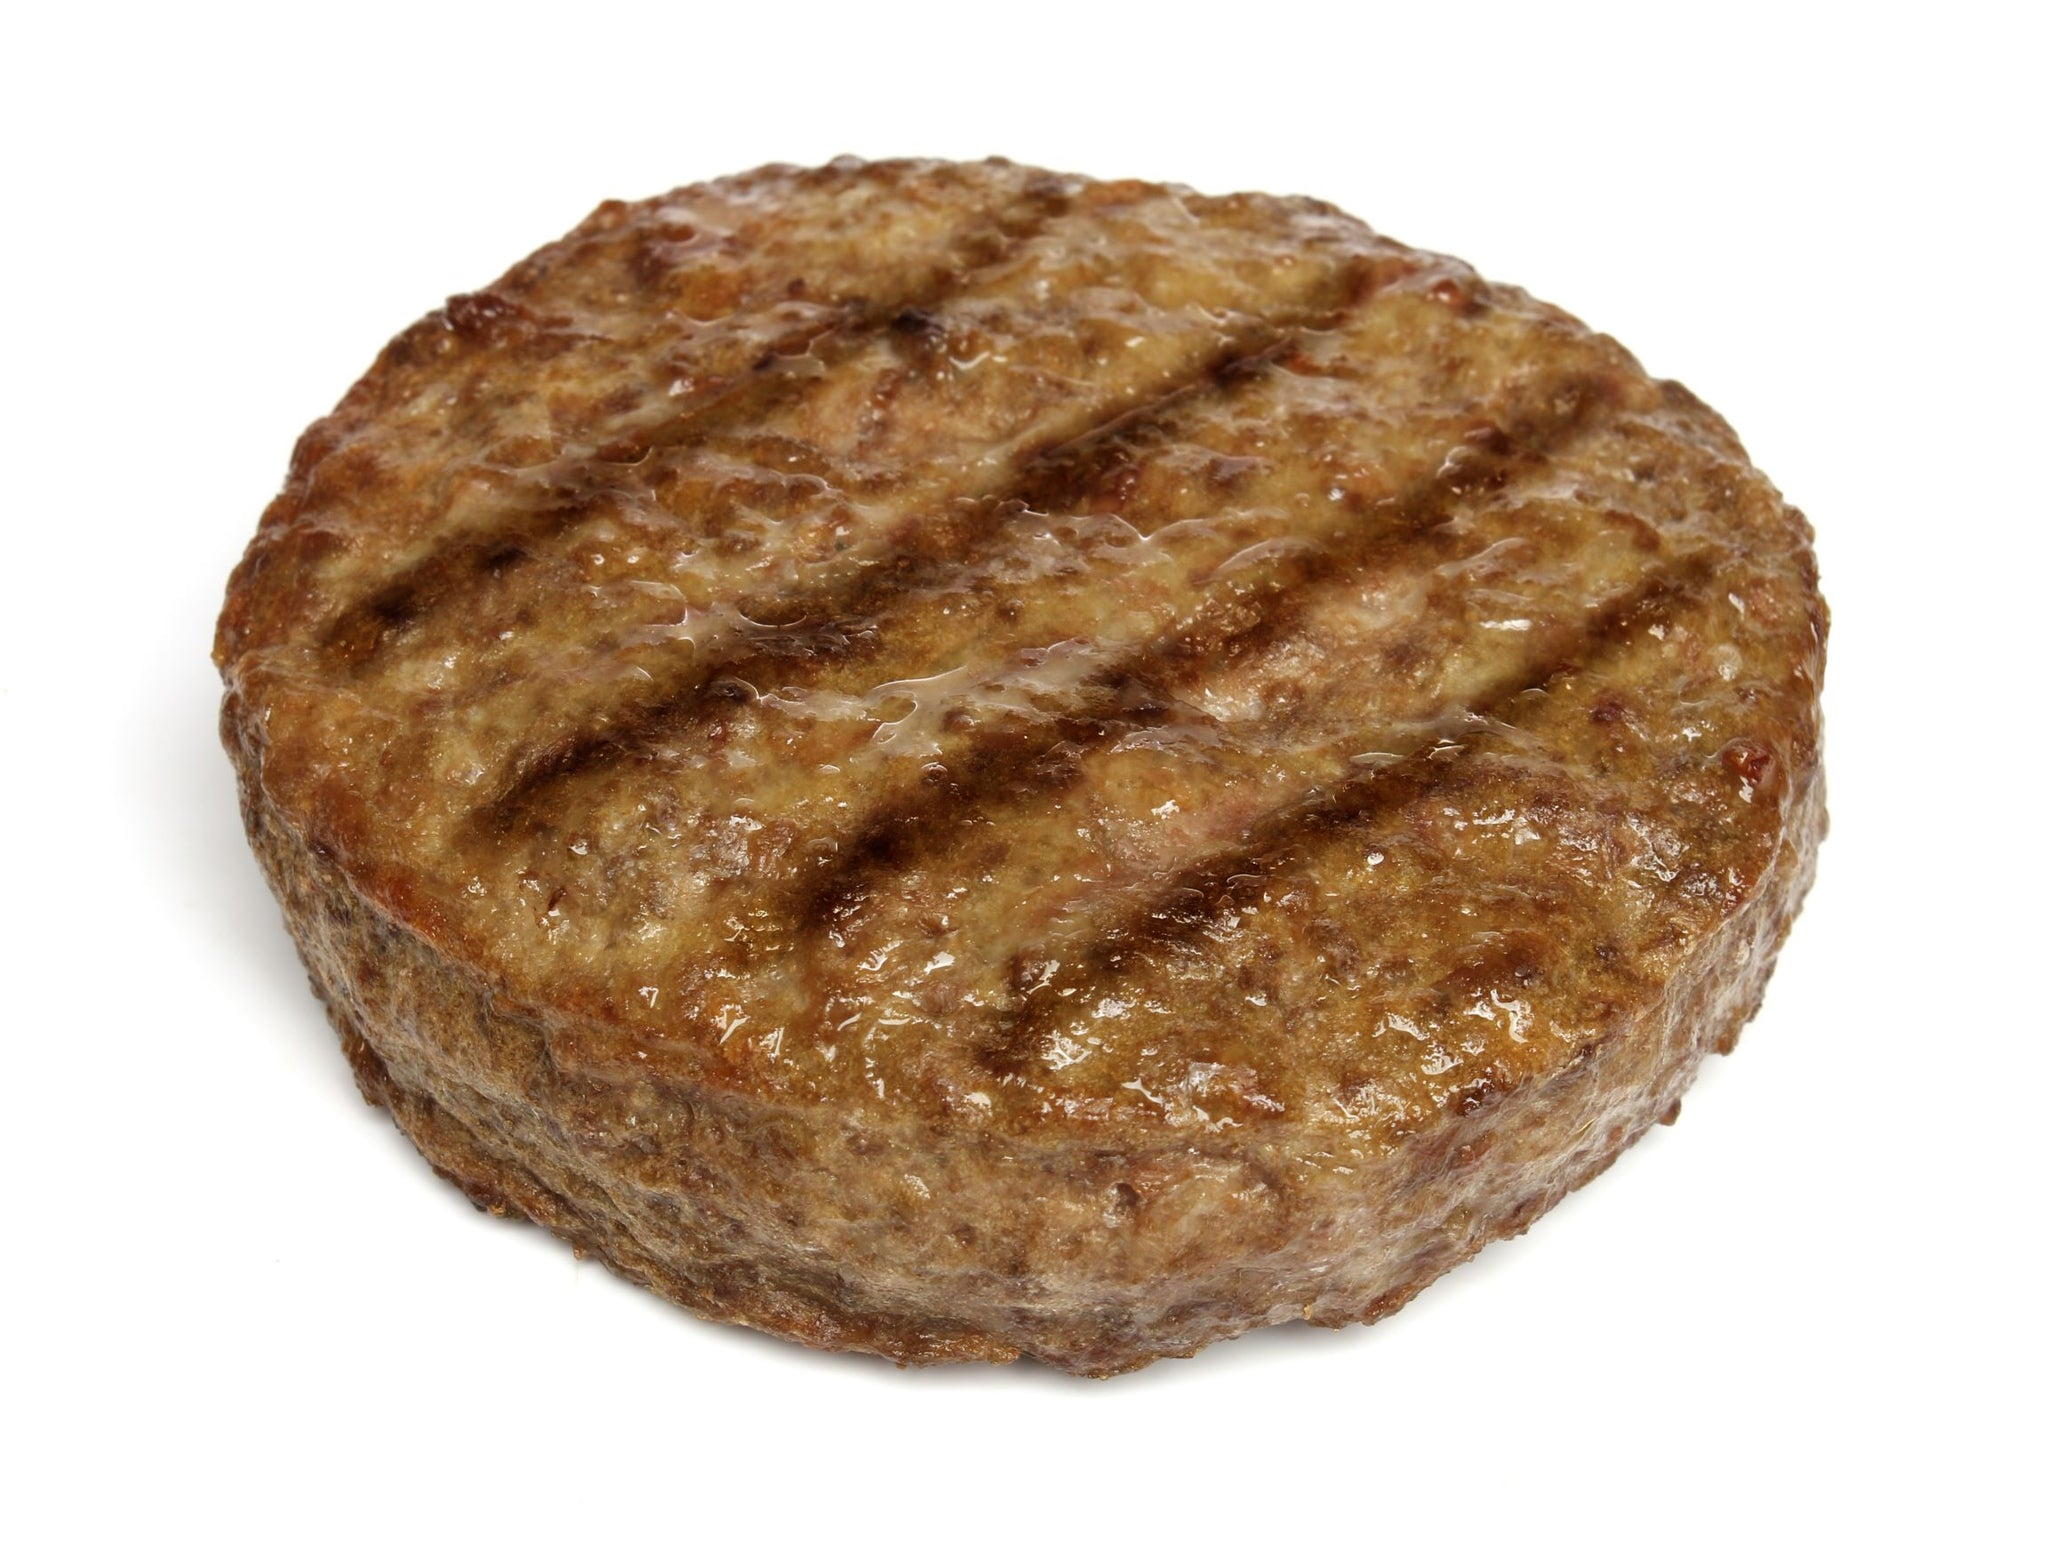 Fire River Farms Frozen Homestyle Beef Burger 5.3 oz - 60 Pack [$1.83/each]